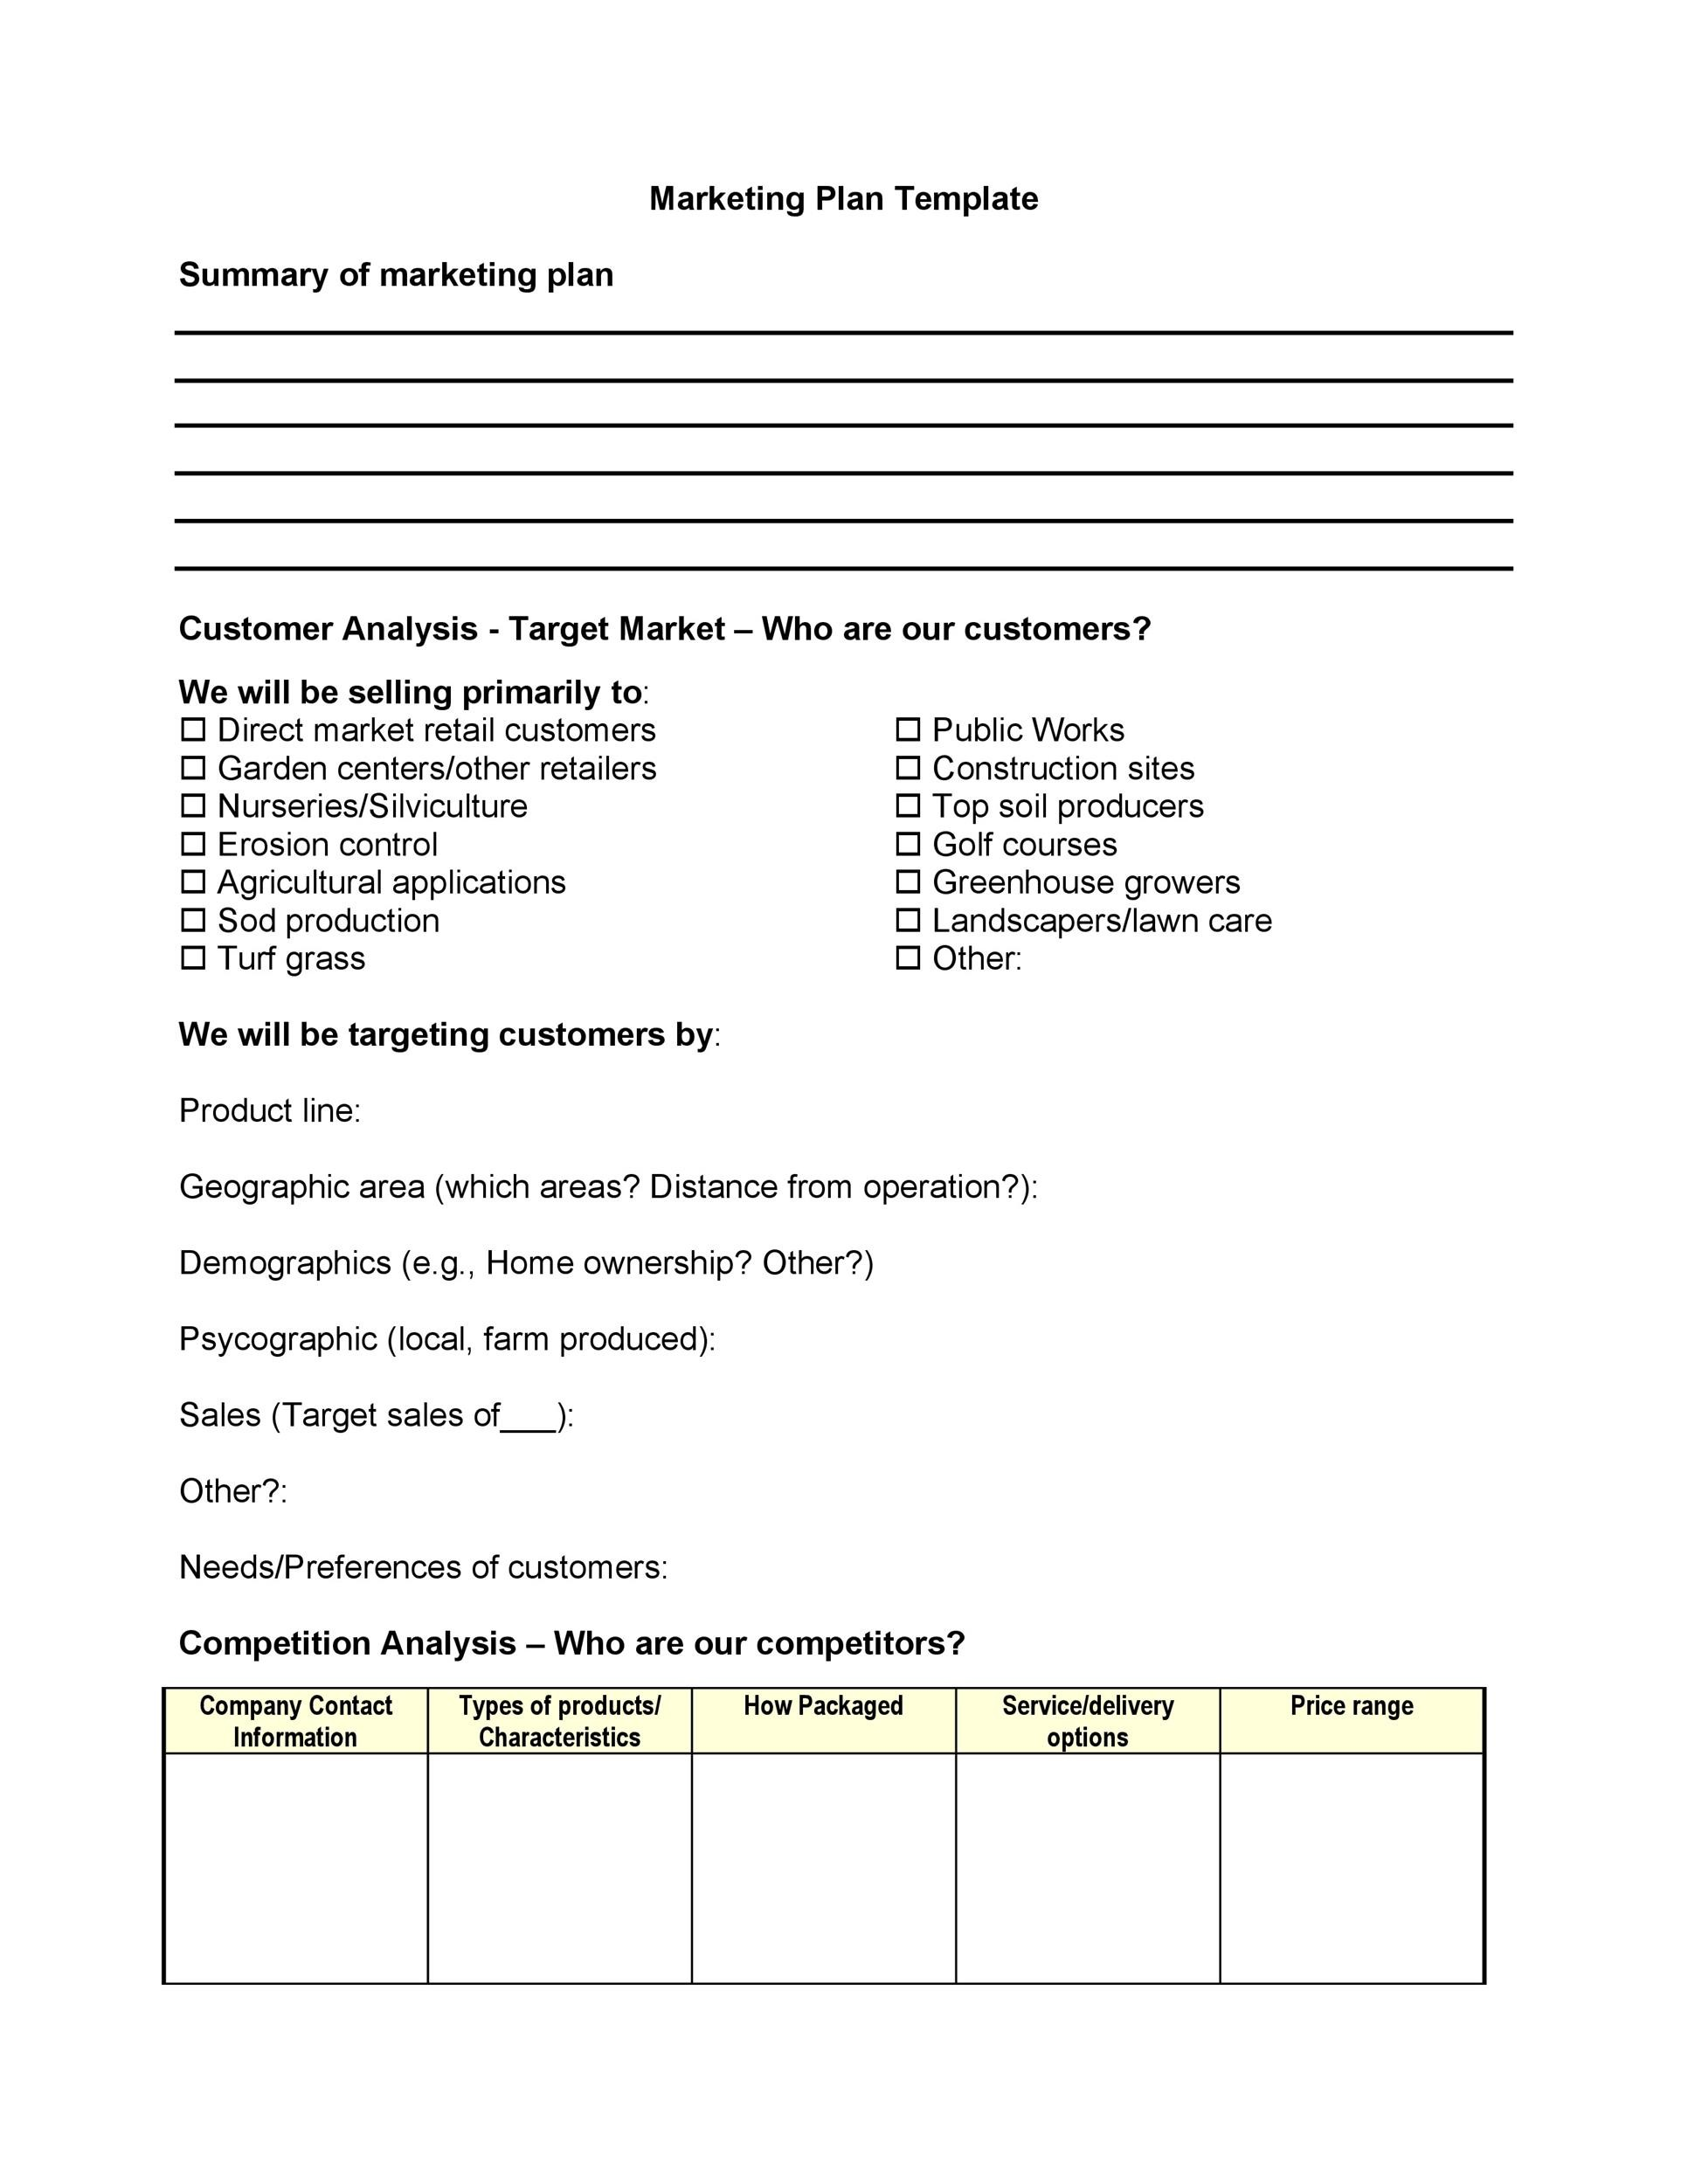 Free Marketing Plan Template 18